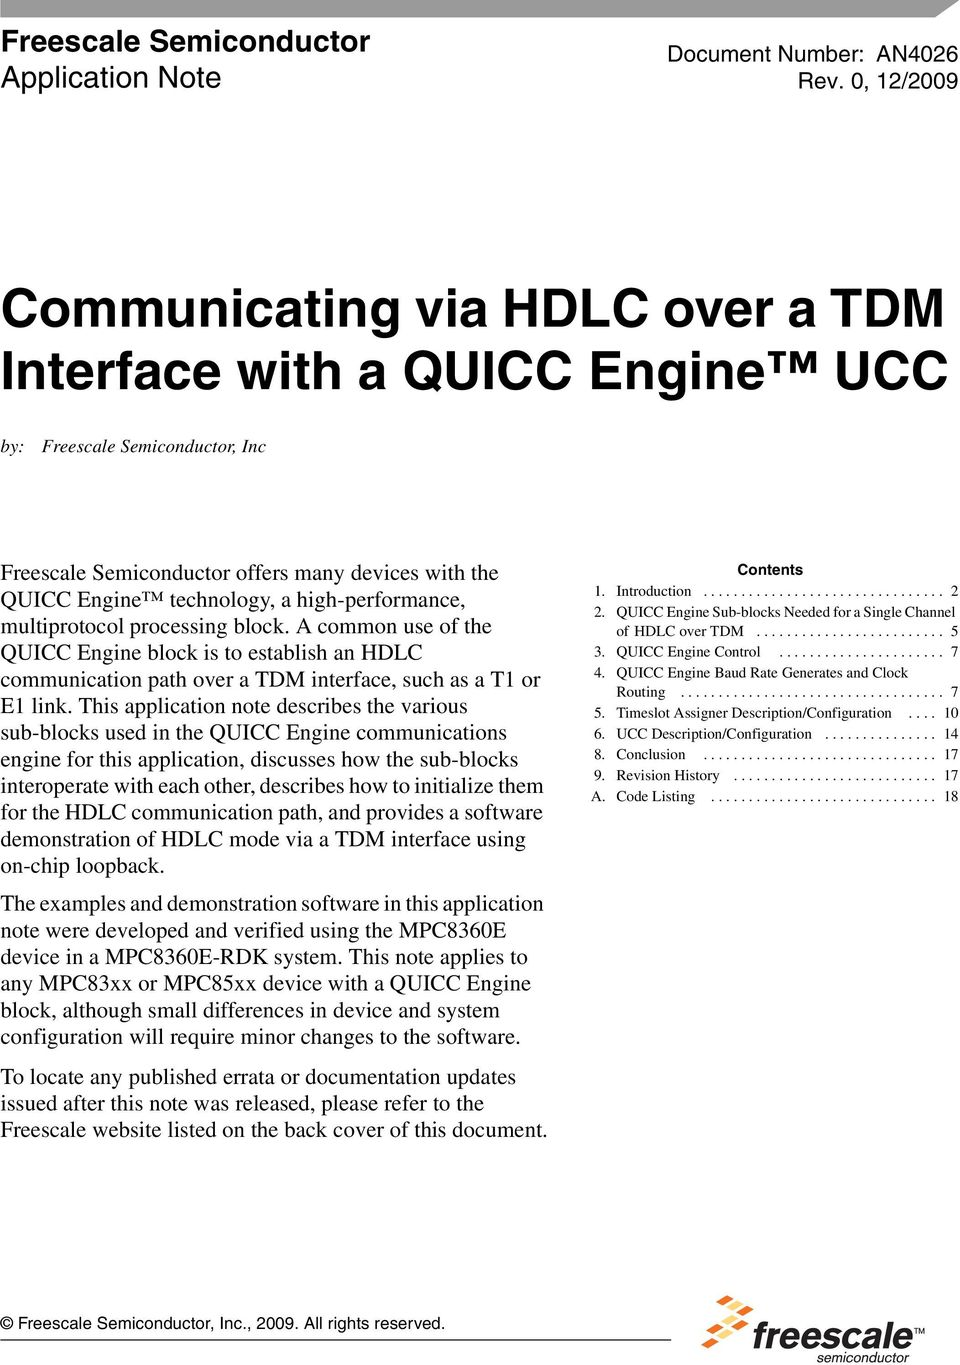 high-performance, multiprotocol processing block. A common use of the QUICC Engine block is to establish an HDLC communication path over a TDM interface, such as a T1 or E1 link.